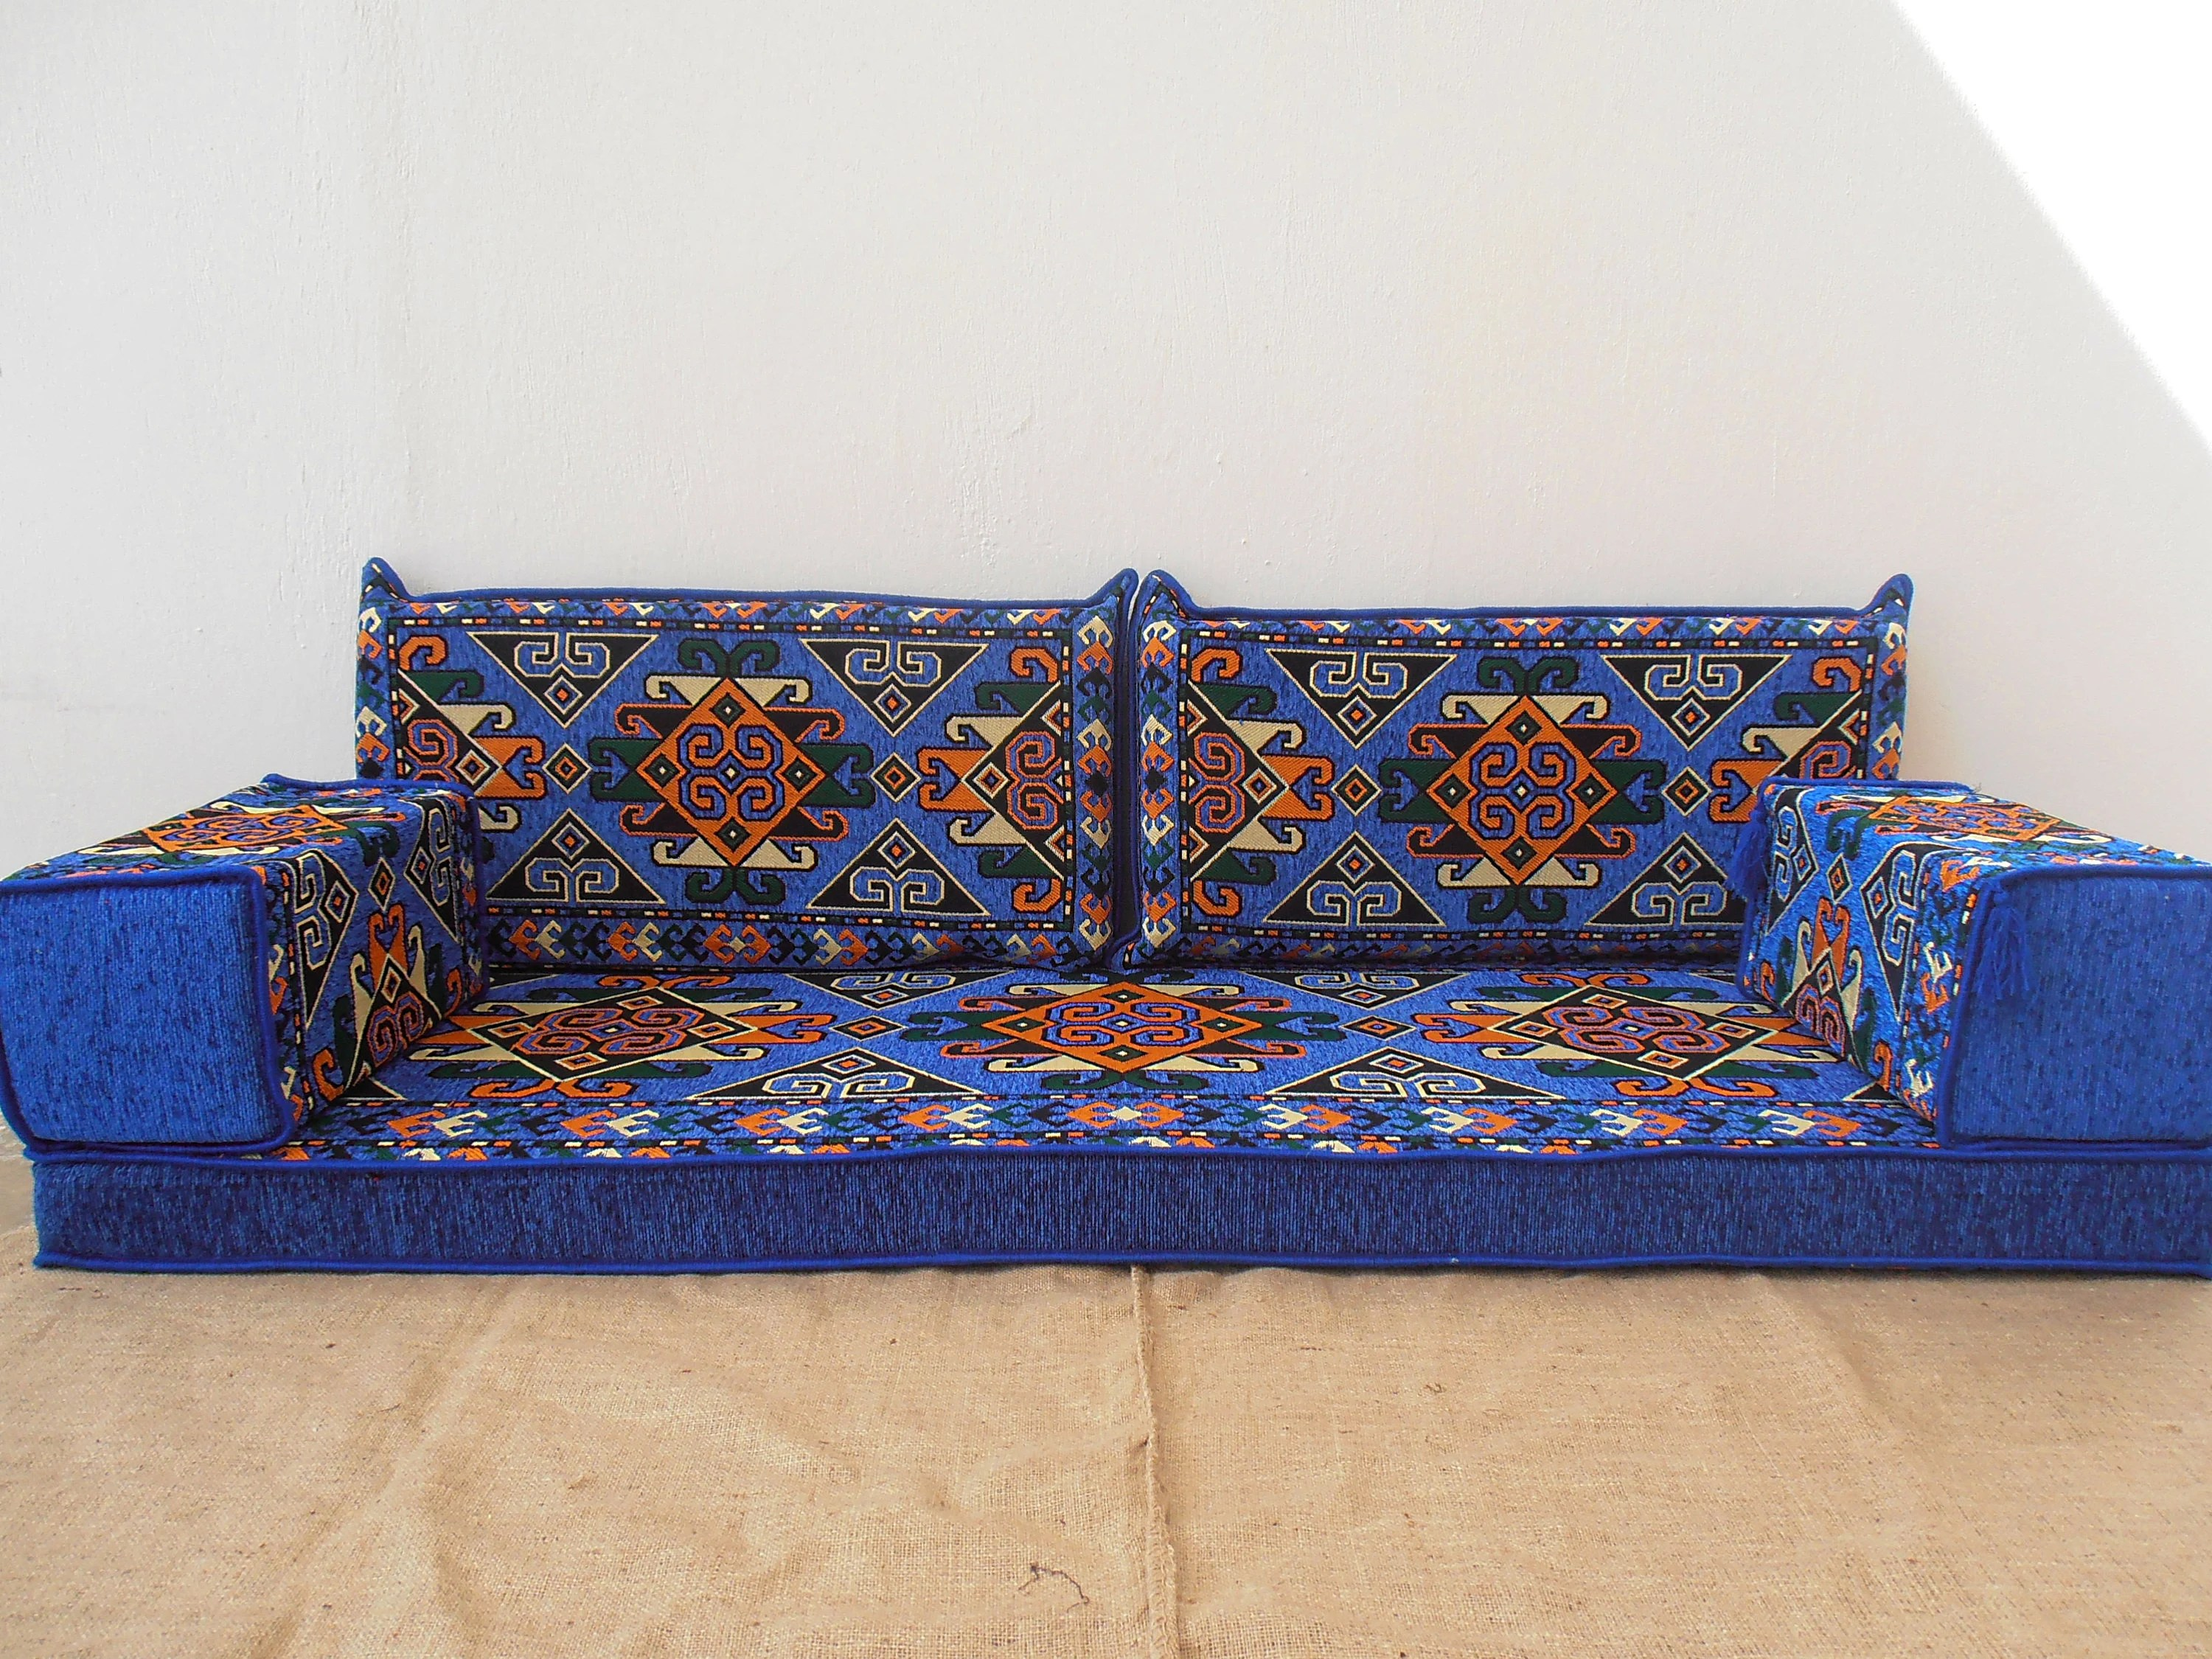 bohemian sofa bed sofaworks bad credit furniture etsy arabic style majlis floor set couch oriental seating ethnic living room